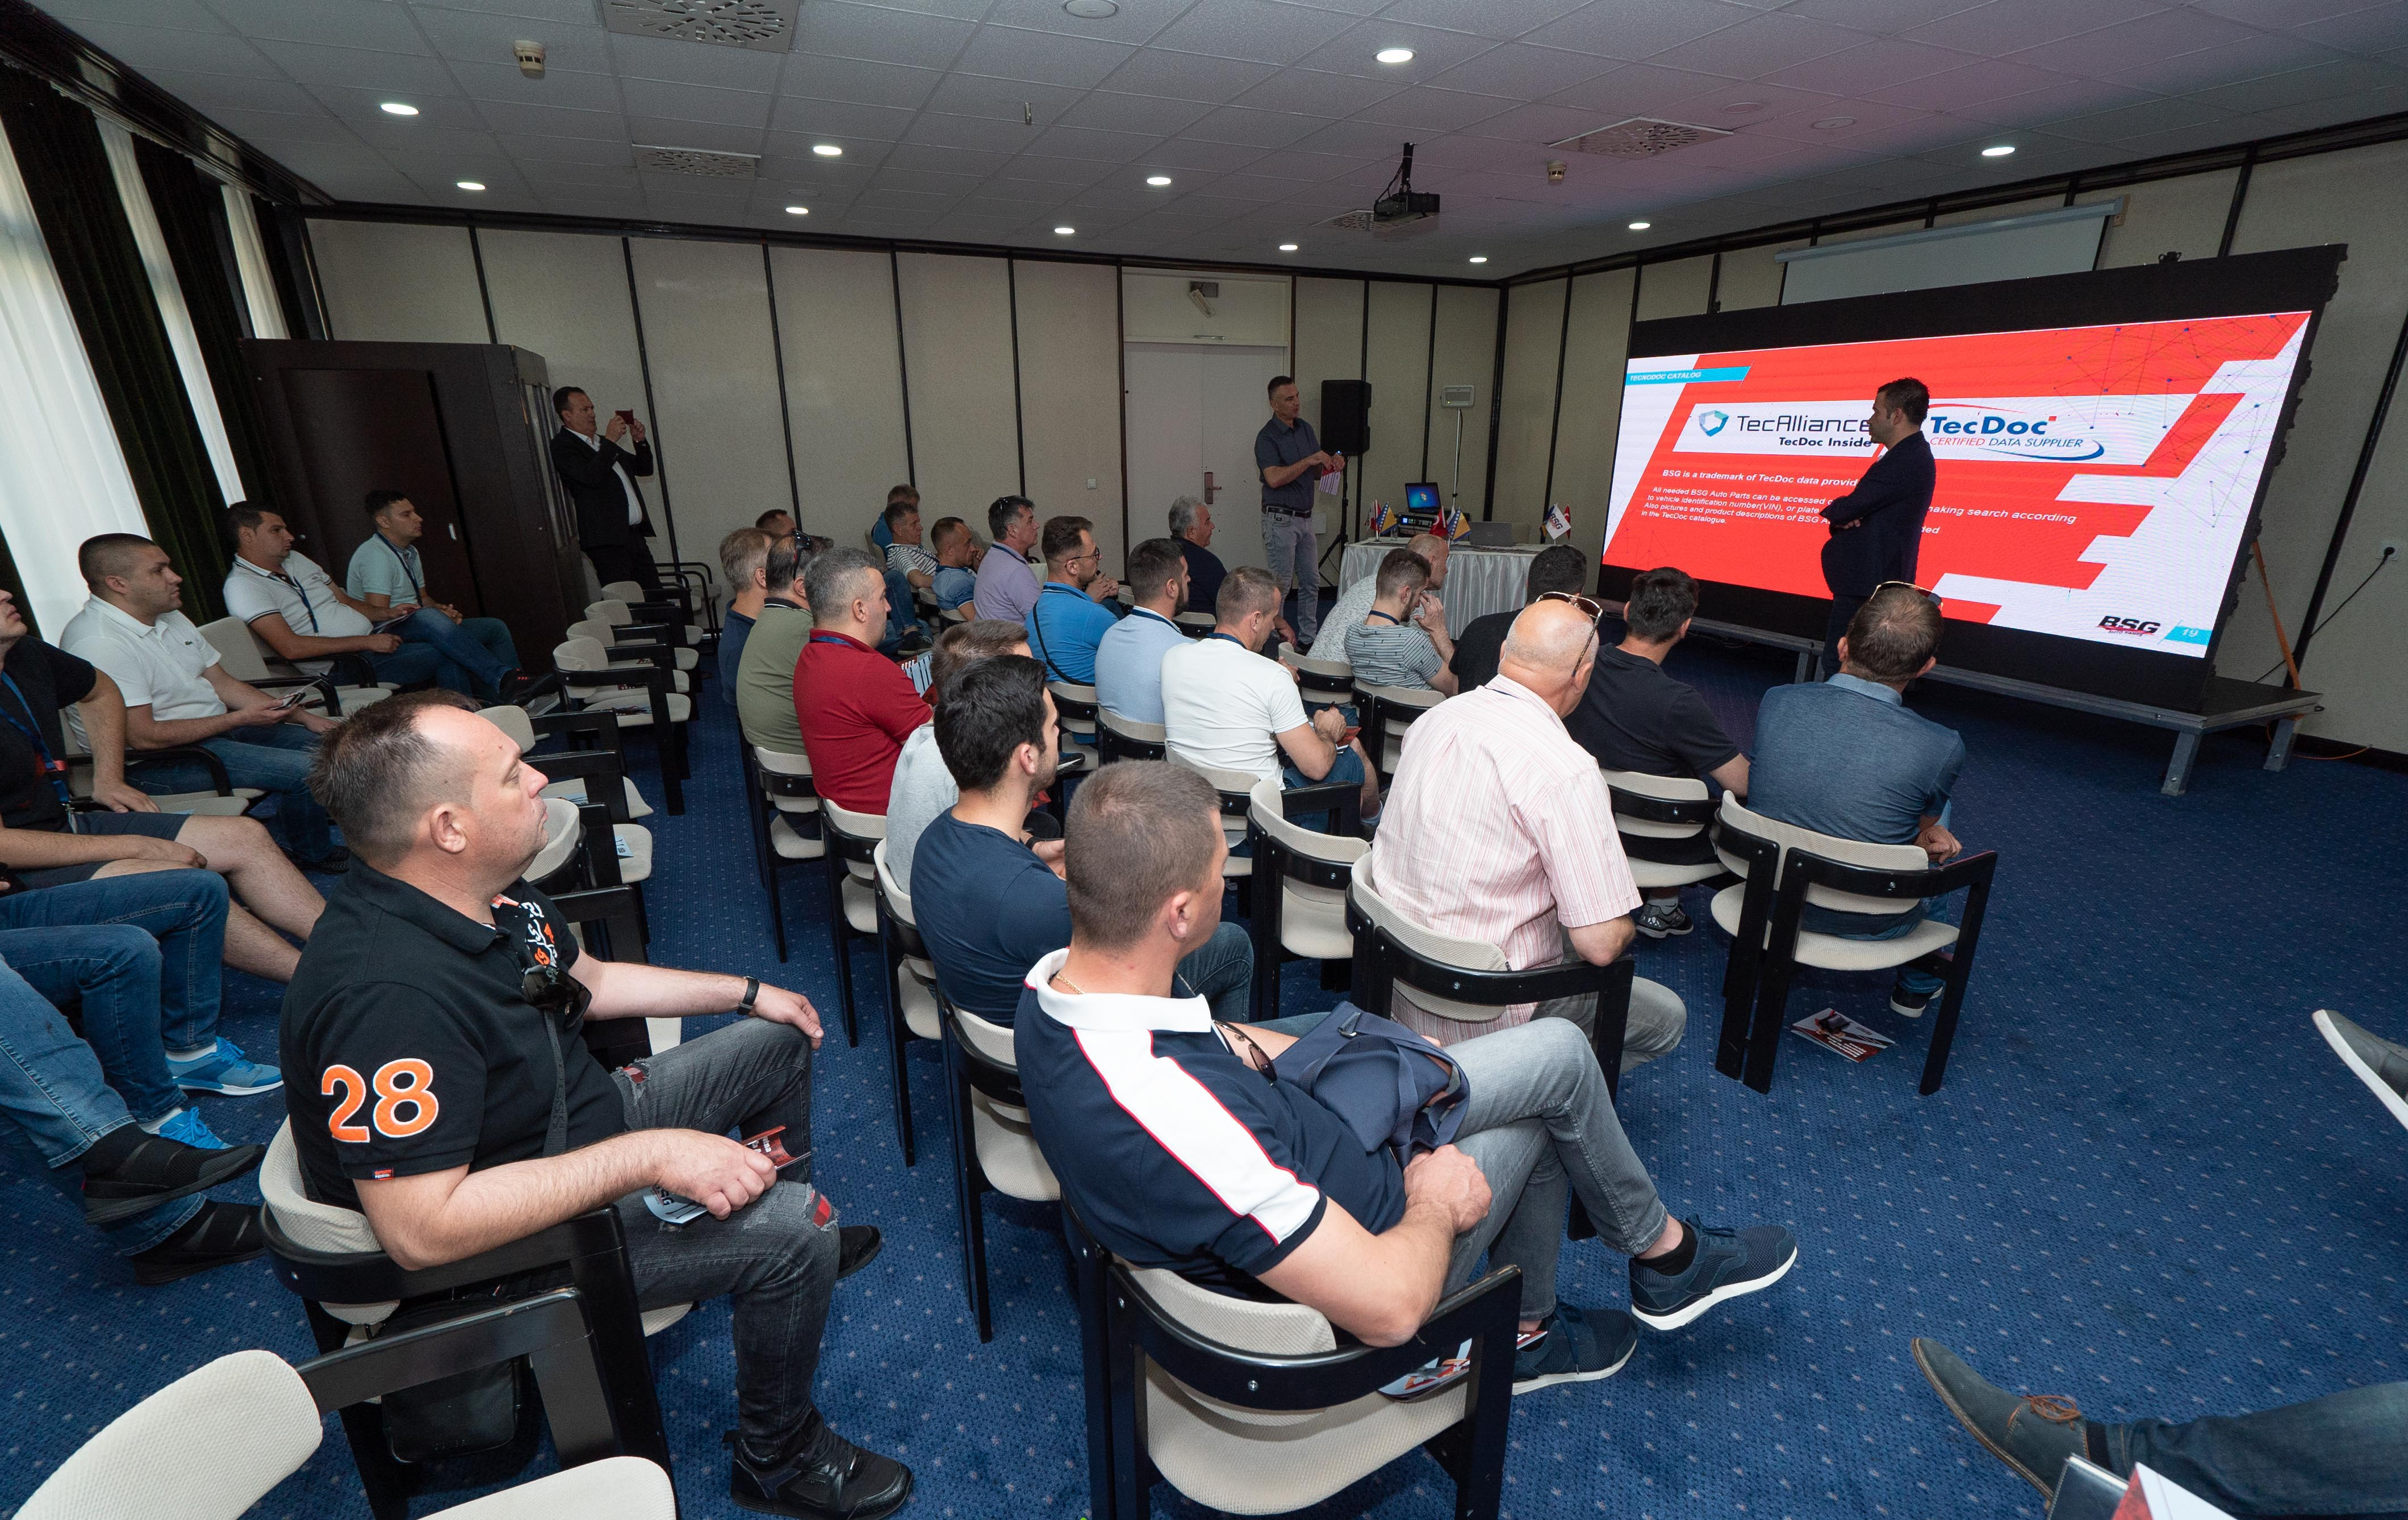 <p>BSG Auto Parts, which serves its customers with high quality product policy in more than 63 countries, has completed the trainings specially organized for master technicians in Izmir, Uşak and Sarajevo.</p>  <p>The training also provided detailed information about the company's investments, product range, consumer rights and the correct use of the products.</p>  <p>After the training, BSG brand representatives and technicians have dined together and had pleasant conversations along with souvenir photos.</p>